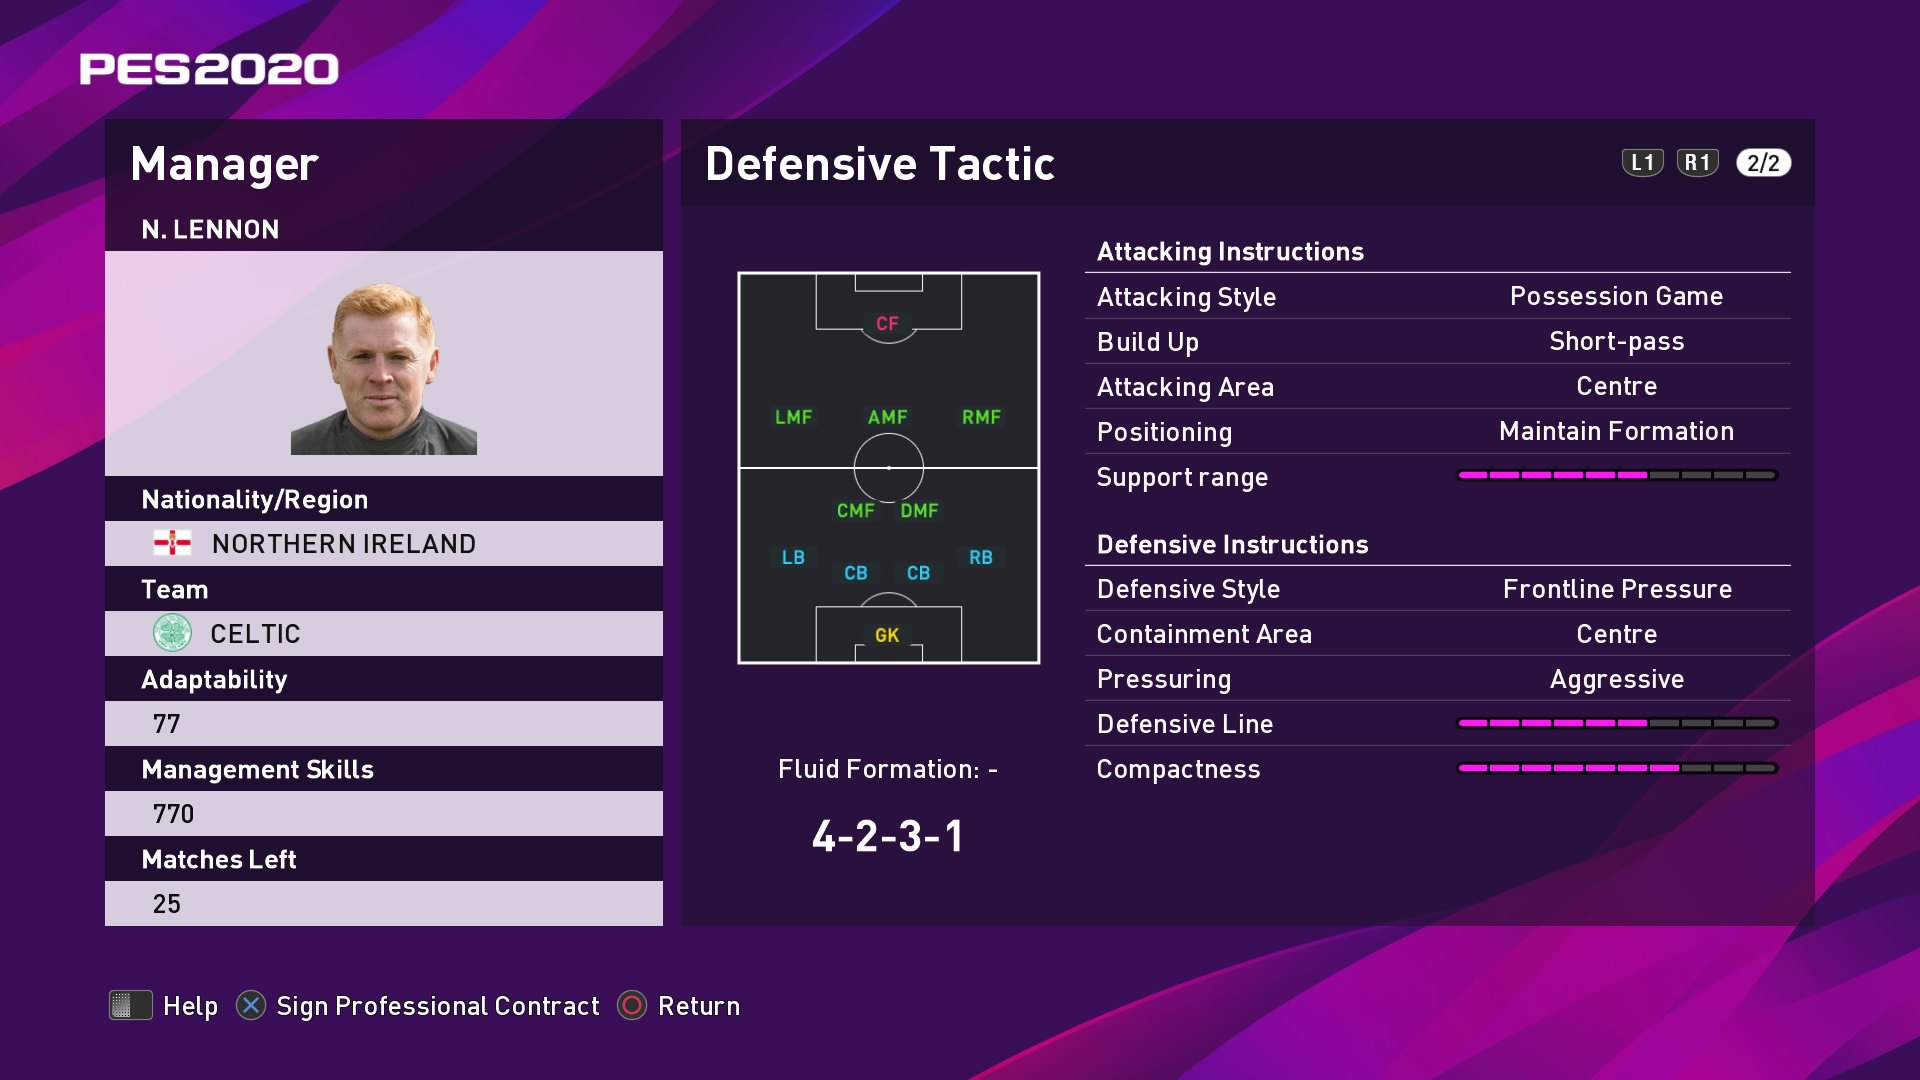 N. Lennon (Neil Lennon) Defensive Tactic in PES 2020 myClub